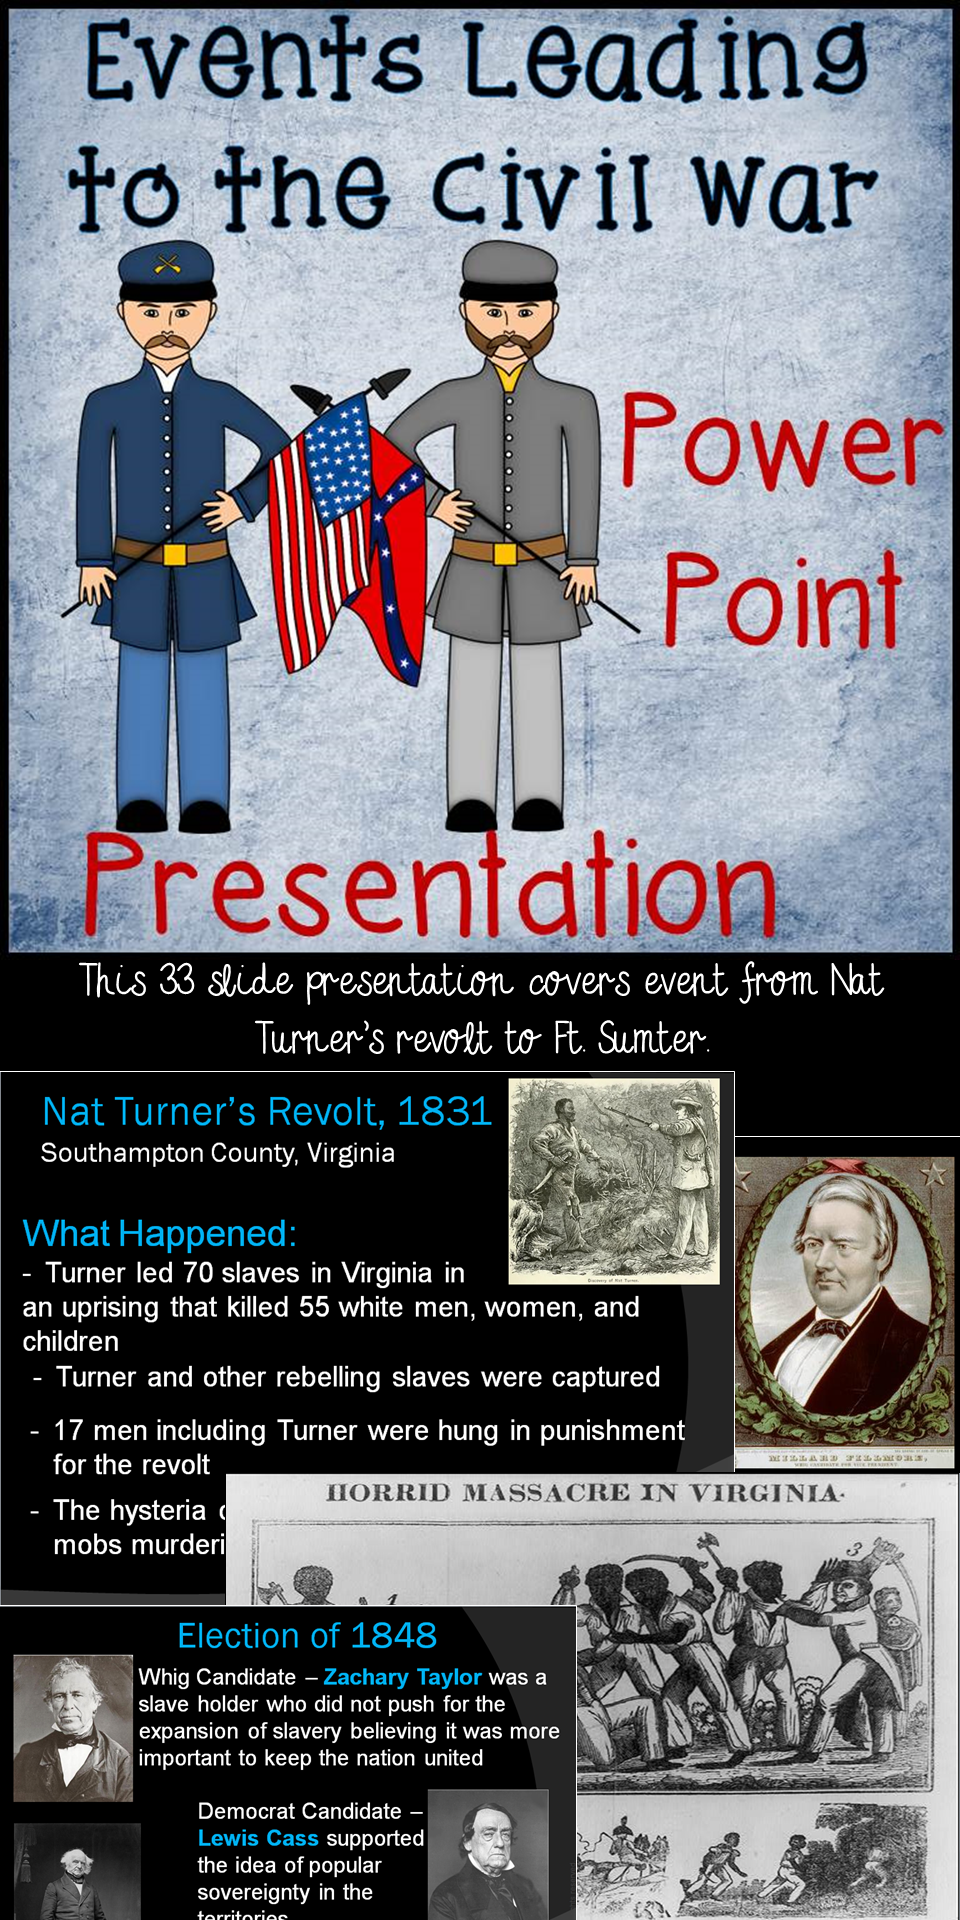 Events leading to the civil war power point presentation pinterest this 33 slide powerpoint presentation covers the main events leading to the american civil war the presentation begins with the 1831 nat turner revolt and toneelgroepblik Choice Image